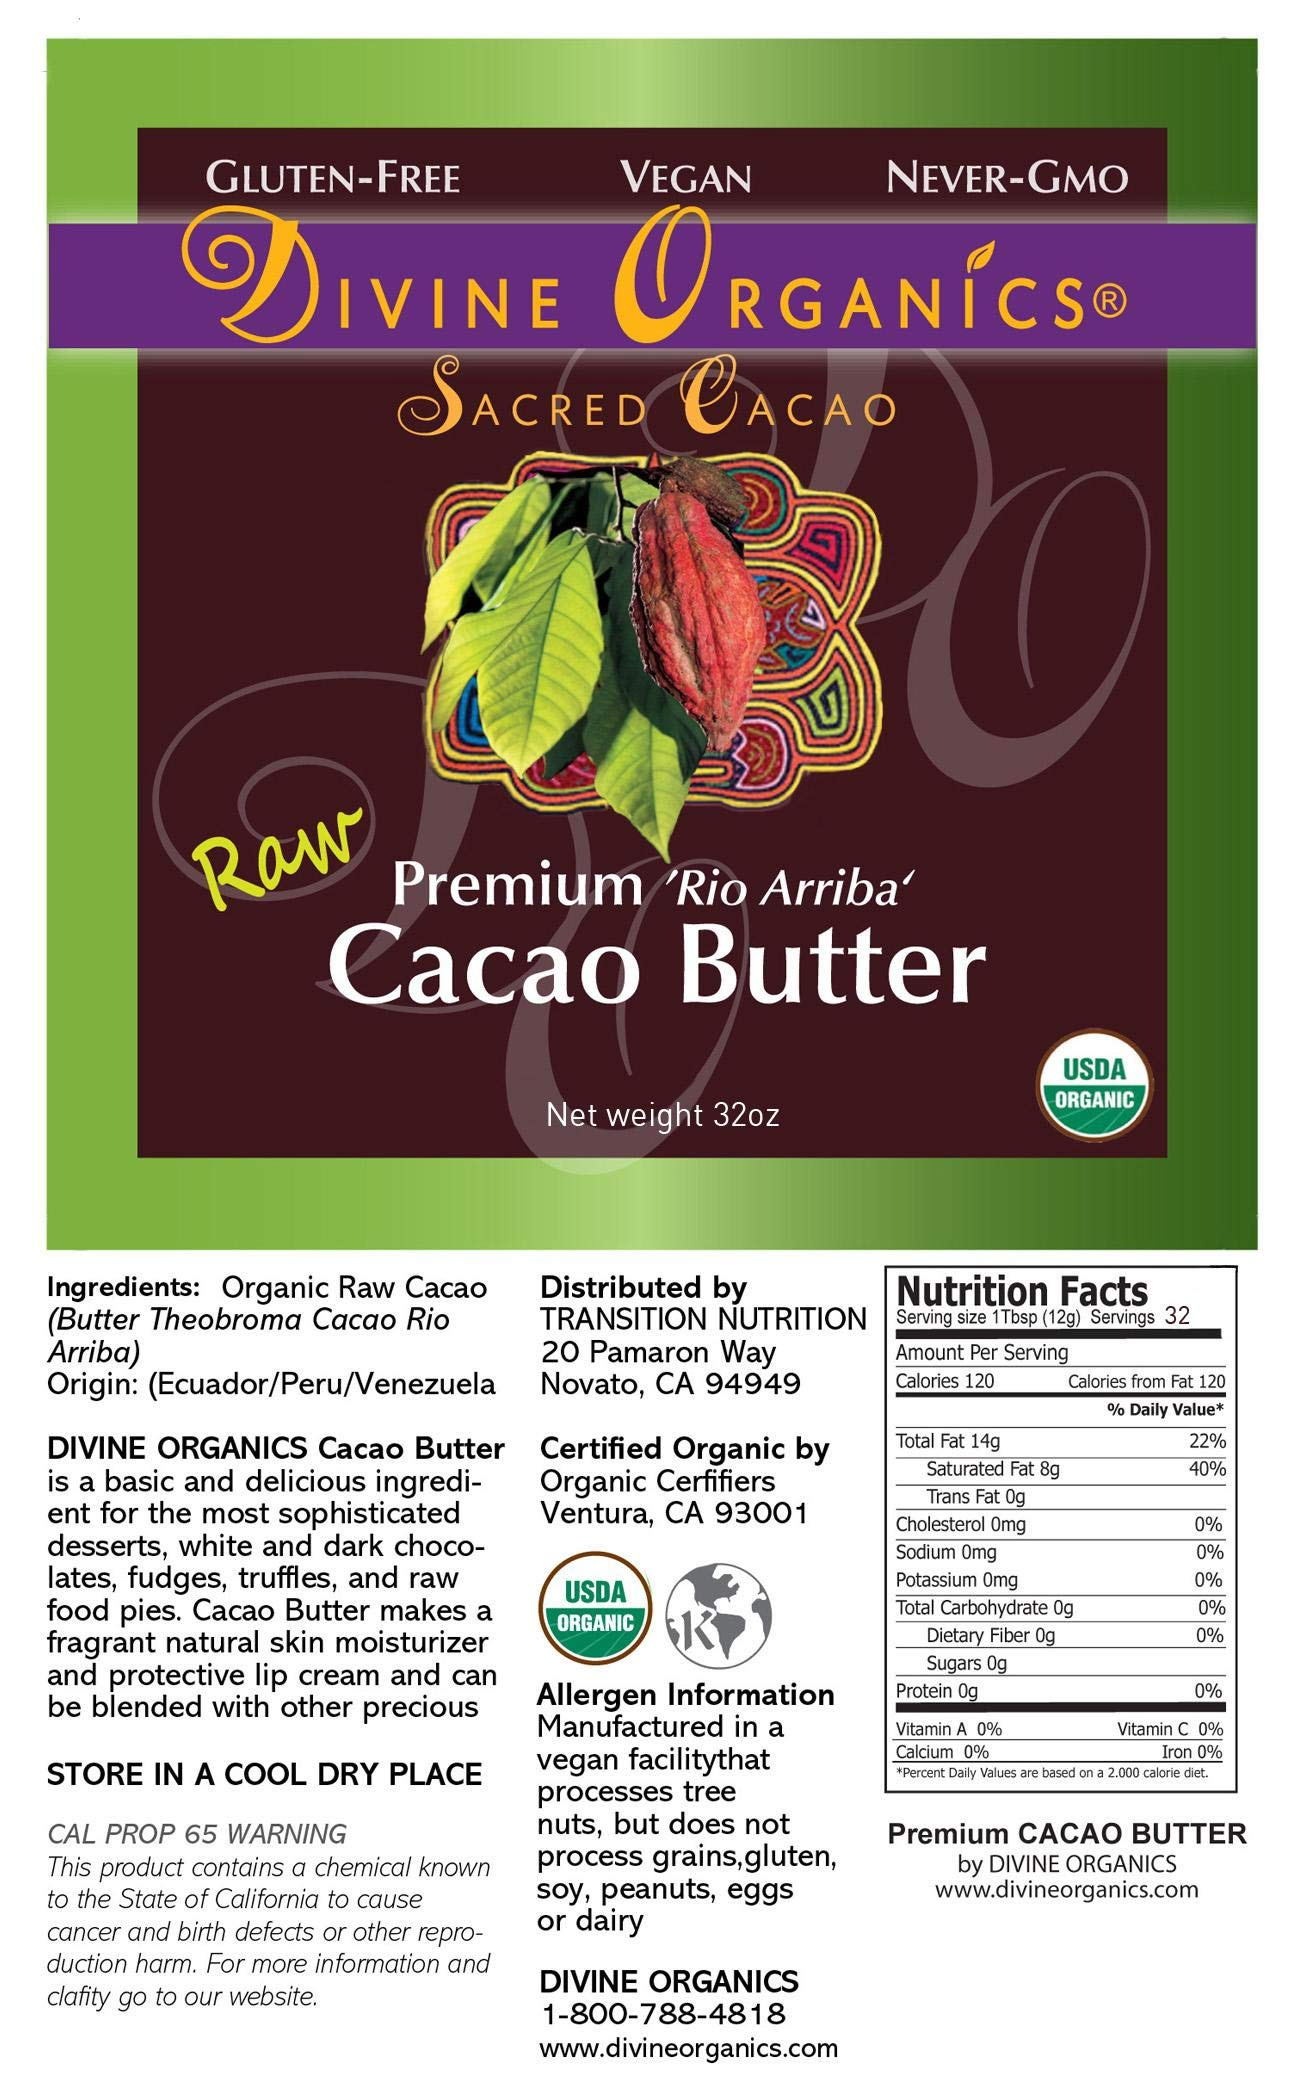 Divine Organics Raw Cacao Butter / Cocoa Butter - Certified Organic - Food Grade - Edible - Fragrant, Natural Skin Moisturizer (32 oz) by Divine Organics (Image #3)